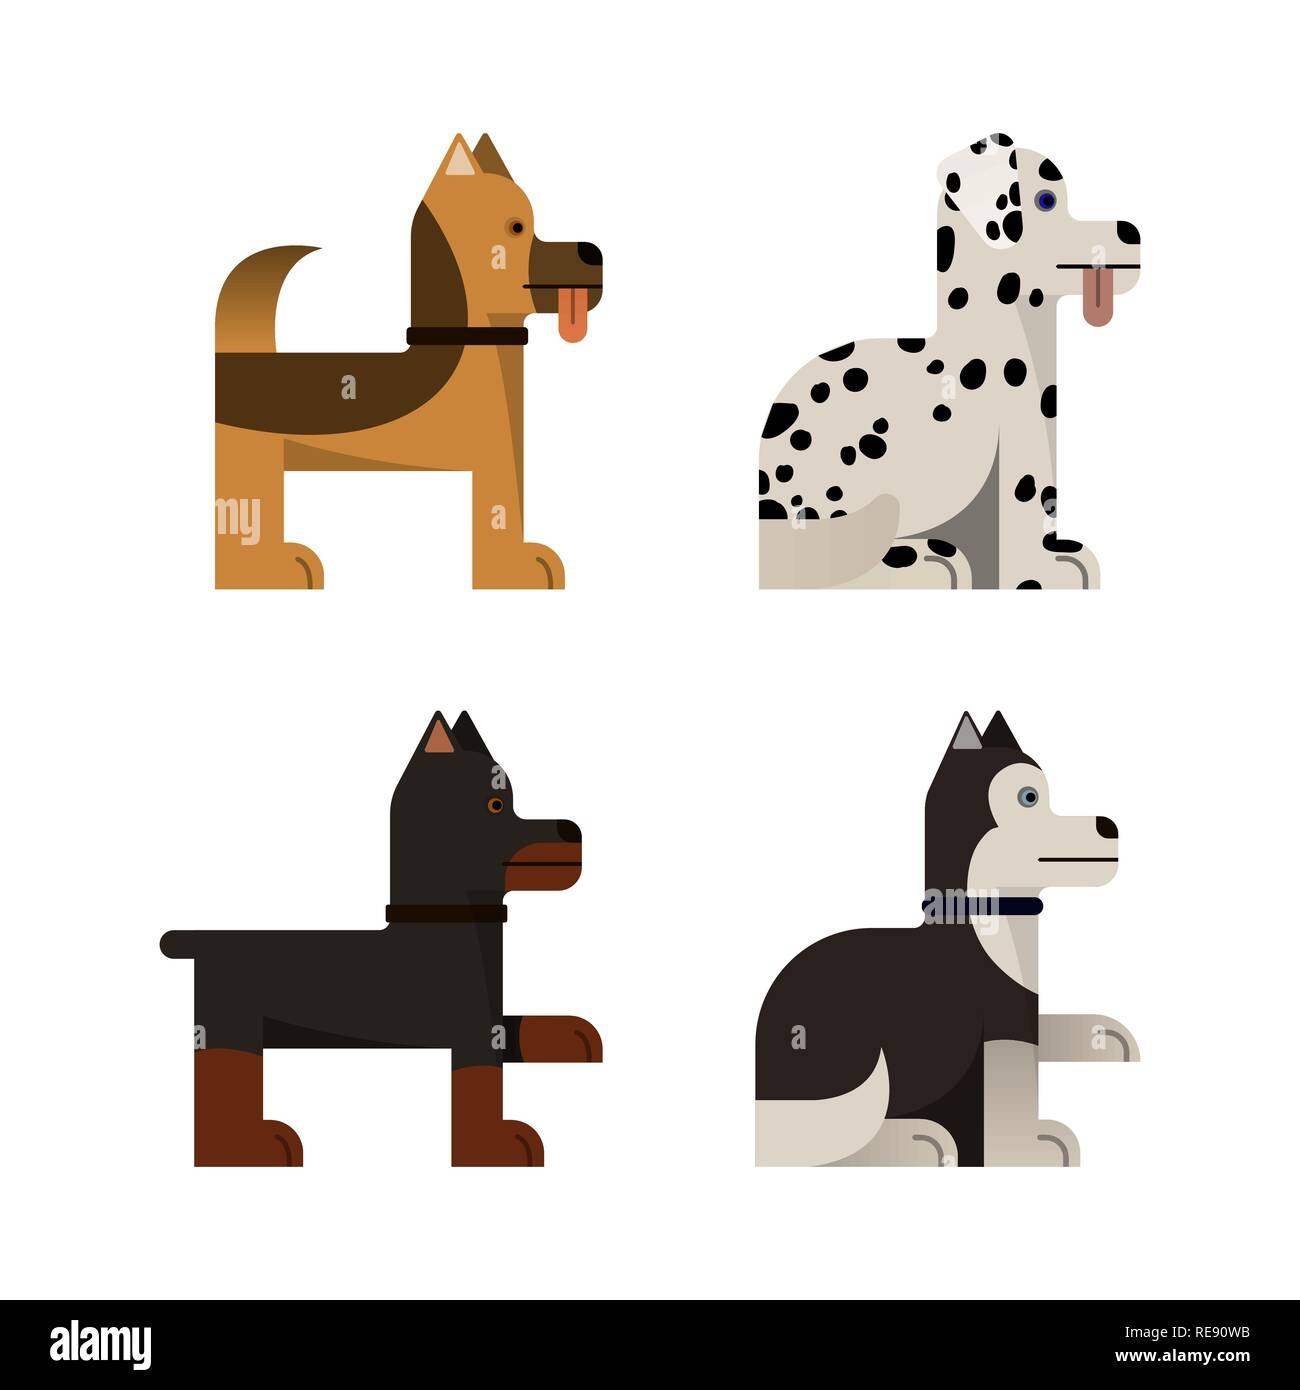 Dogs stand and sit. Doberman, shepherd, husky and dalmatian. Vector illustration. Flat icons set - Stock Vector